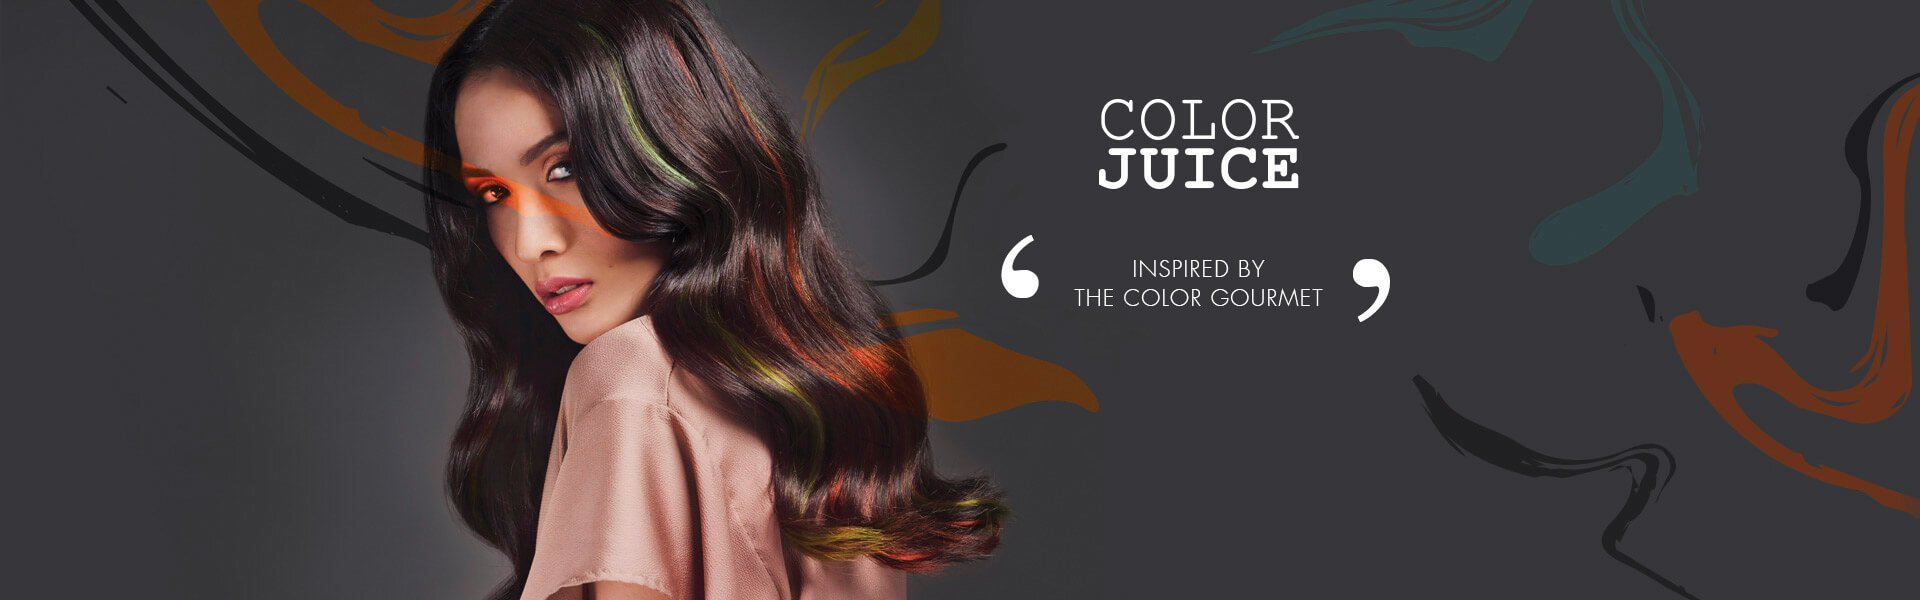 COLOR_JUICE_banner_centrali_ok